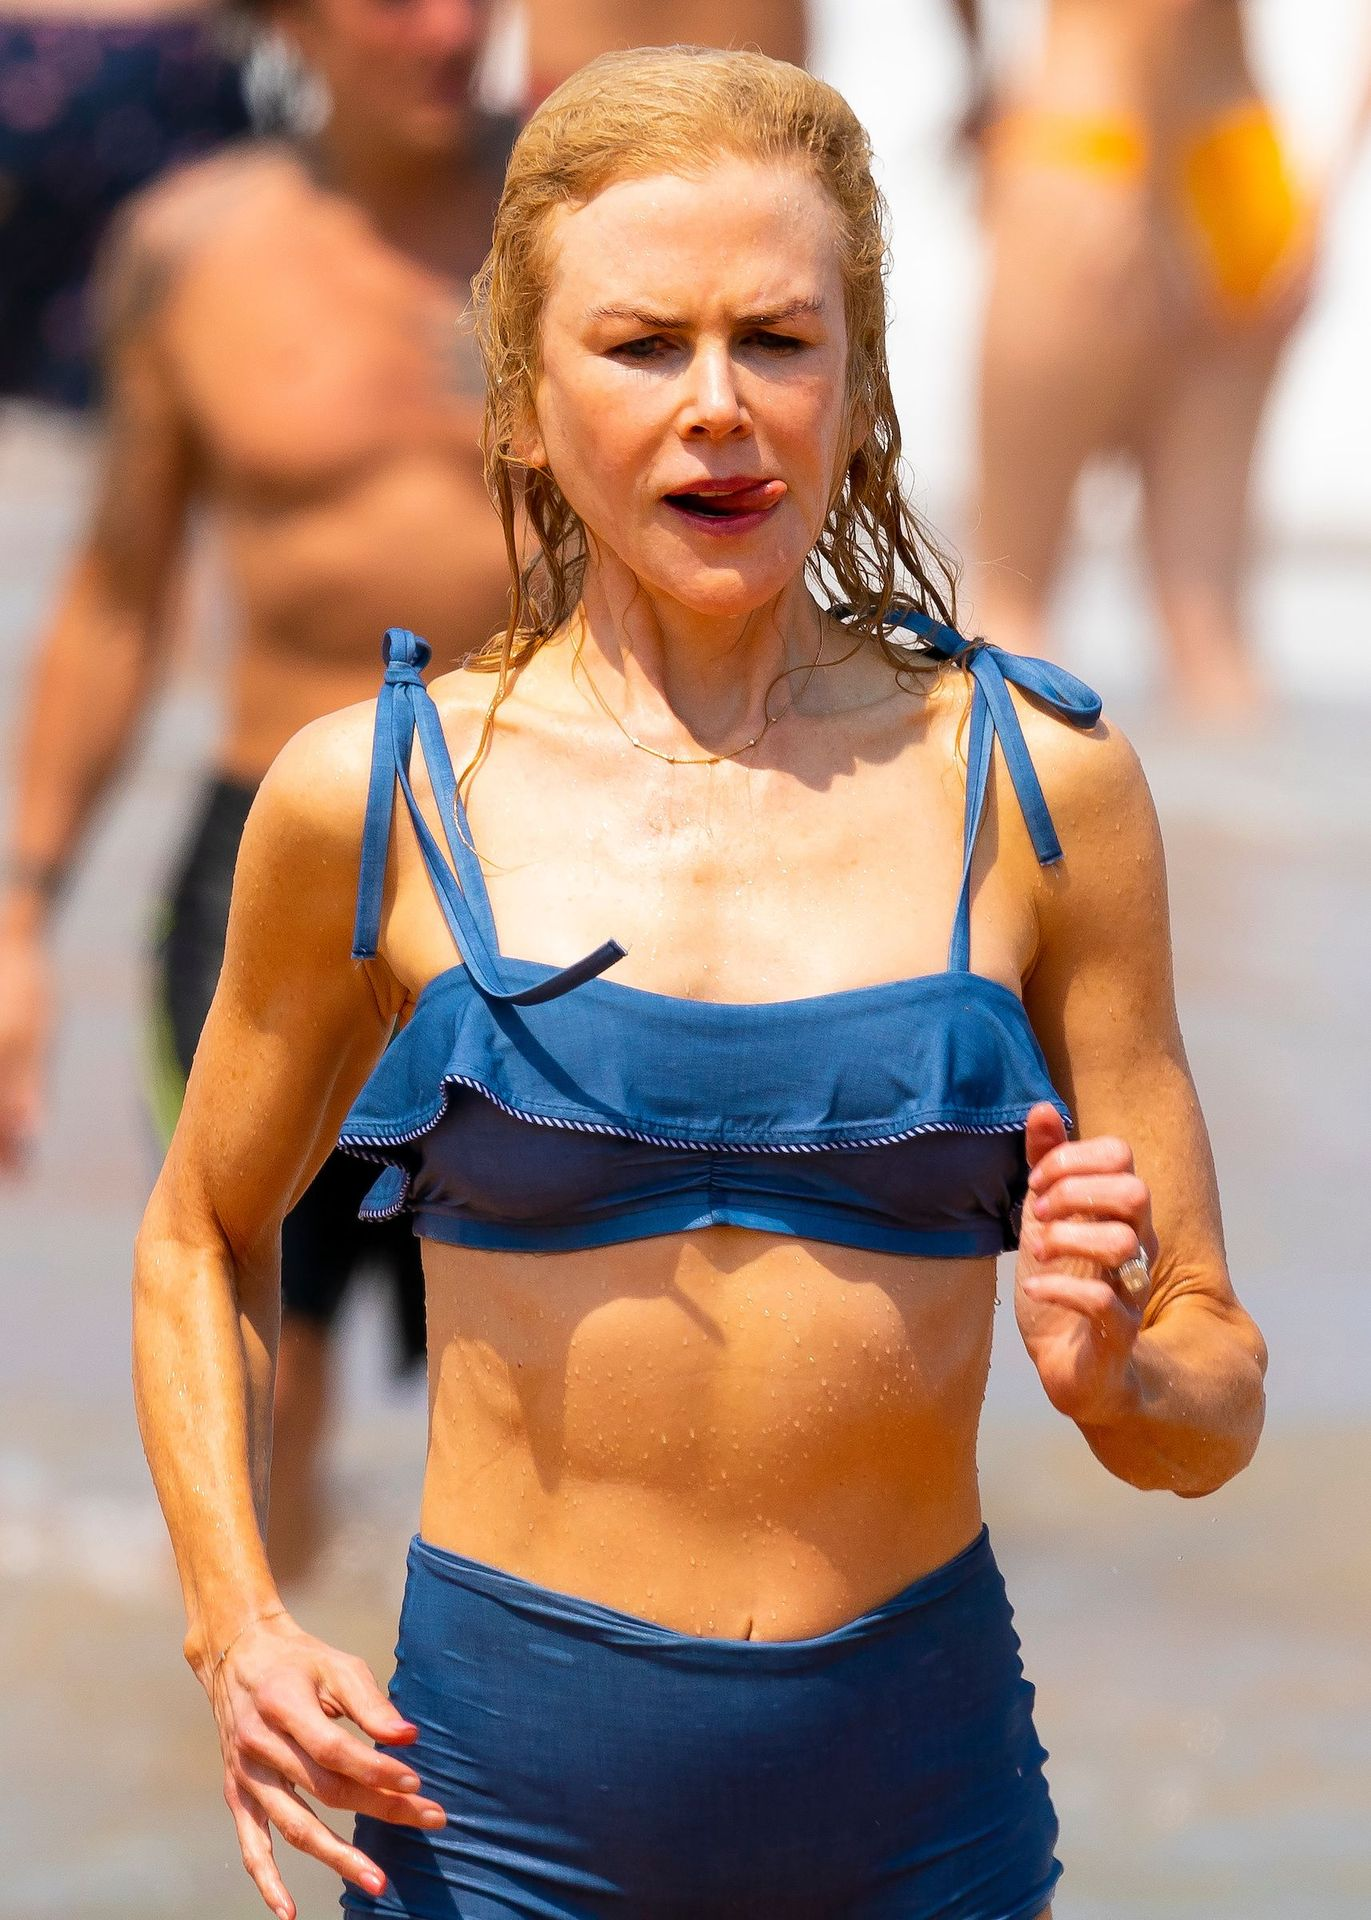 Nicole Kidman Hits The Beach While In Sydney With Her Family 0080